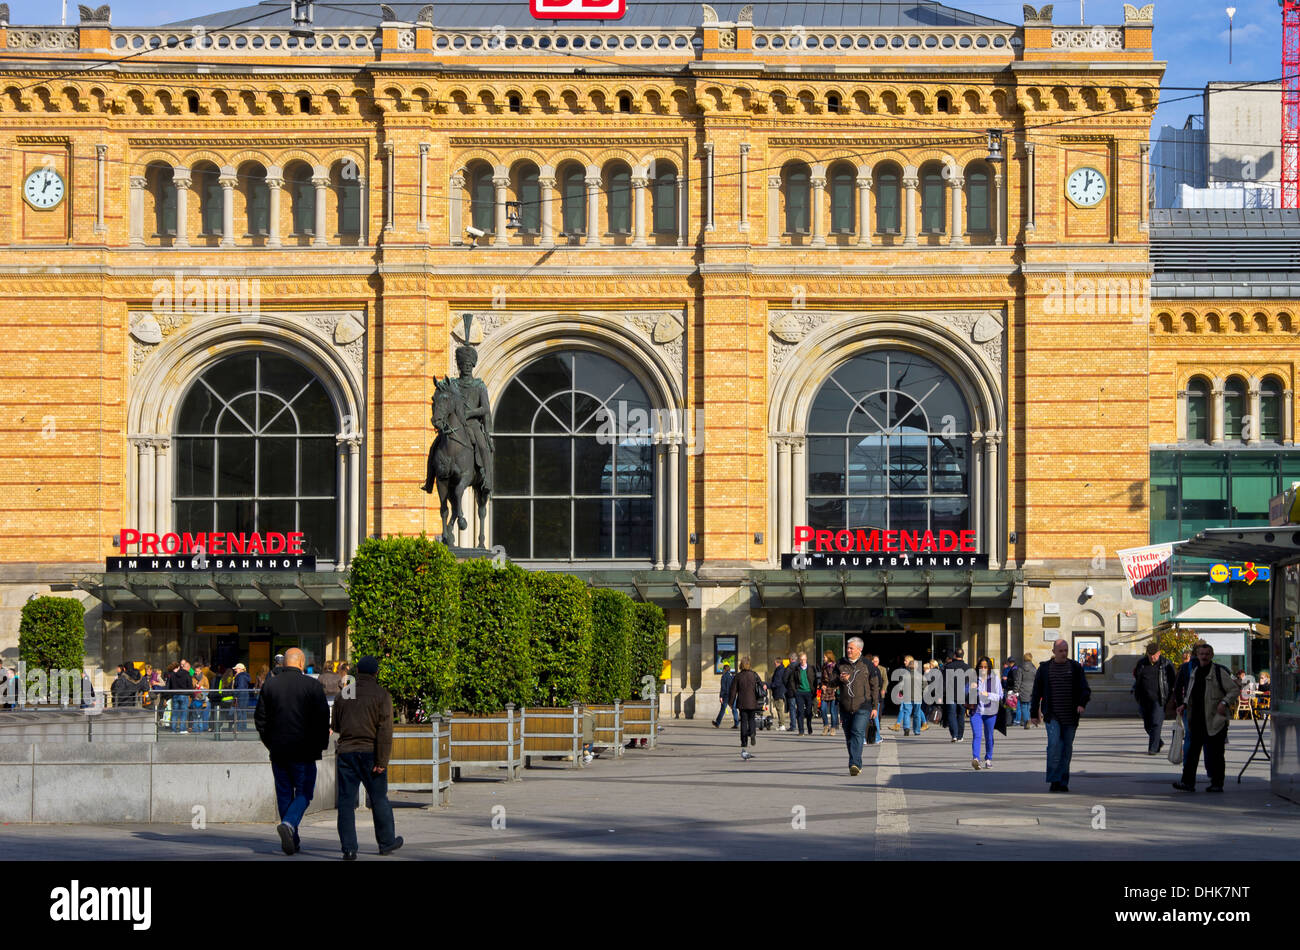 railway station hannover stock photos railway station hannover stock images alamy. Black Bedroom Furniture Sets. Home Design Ideas